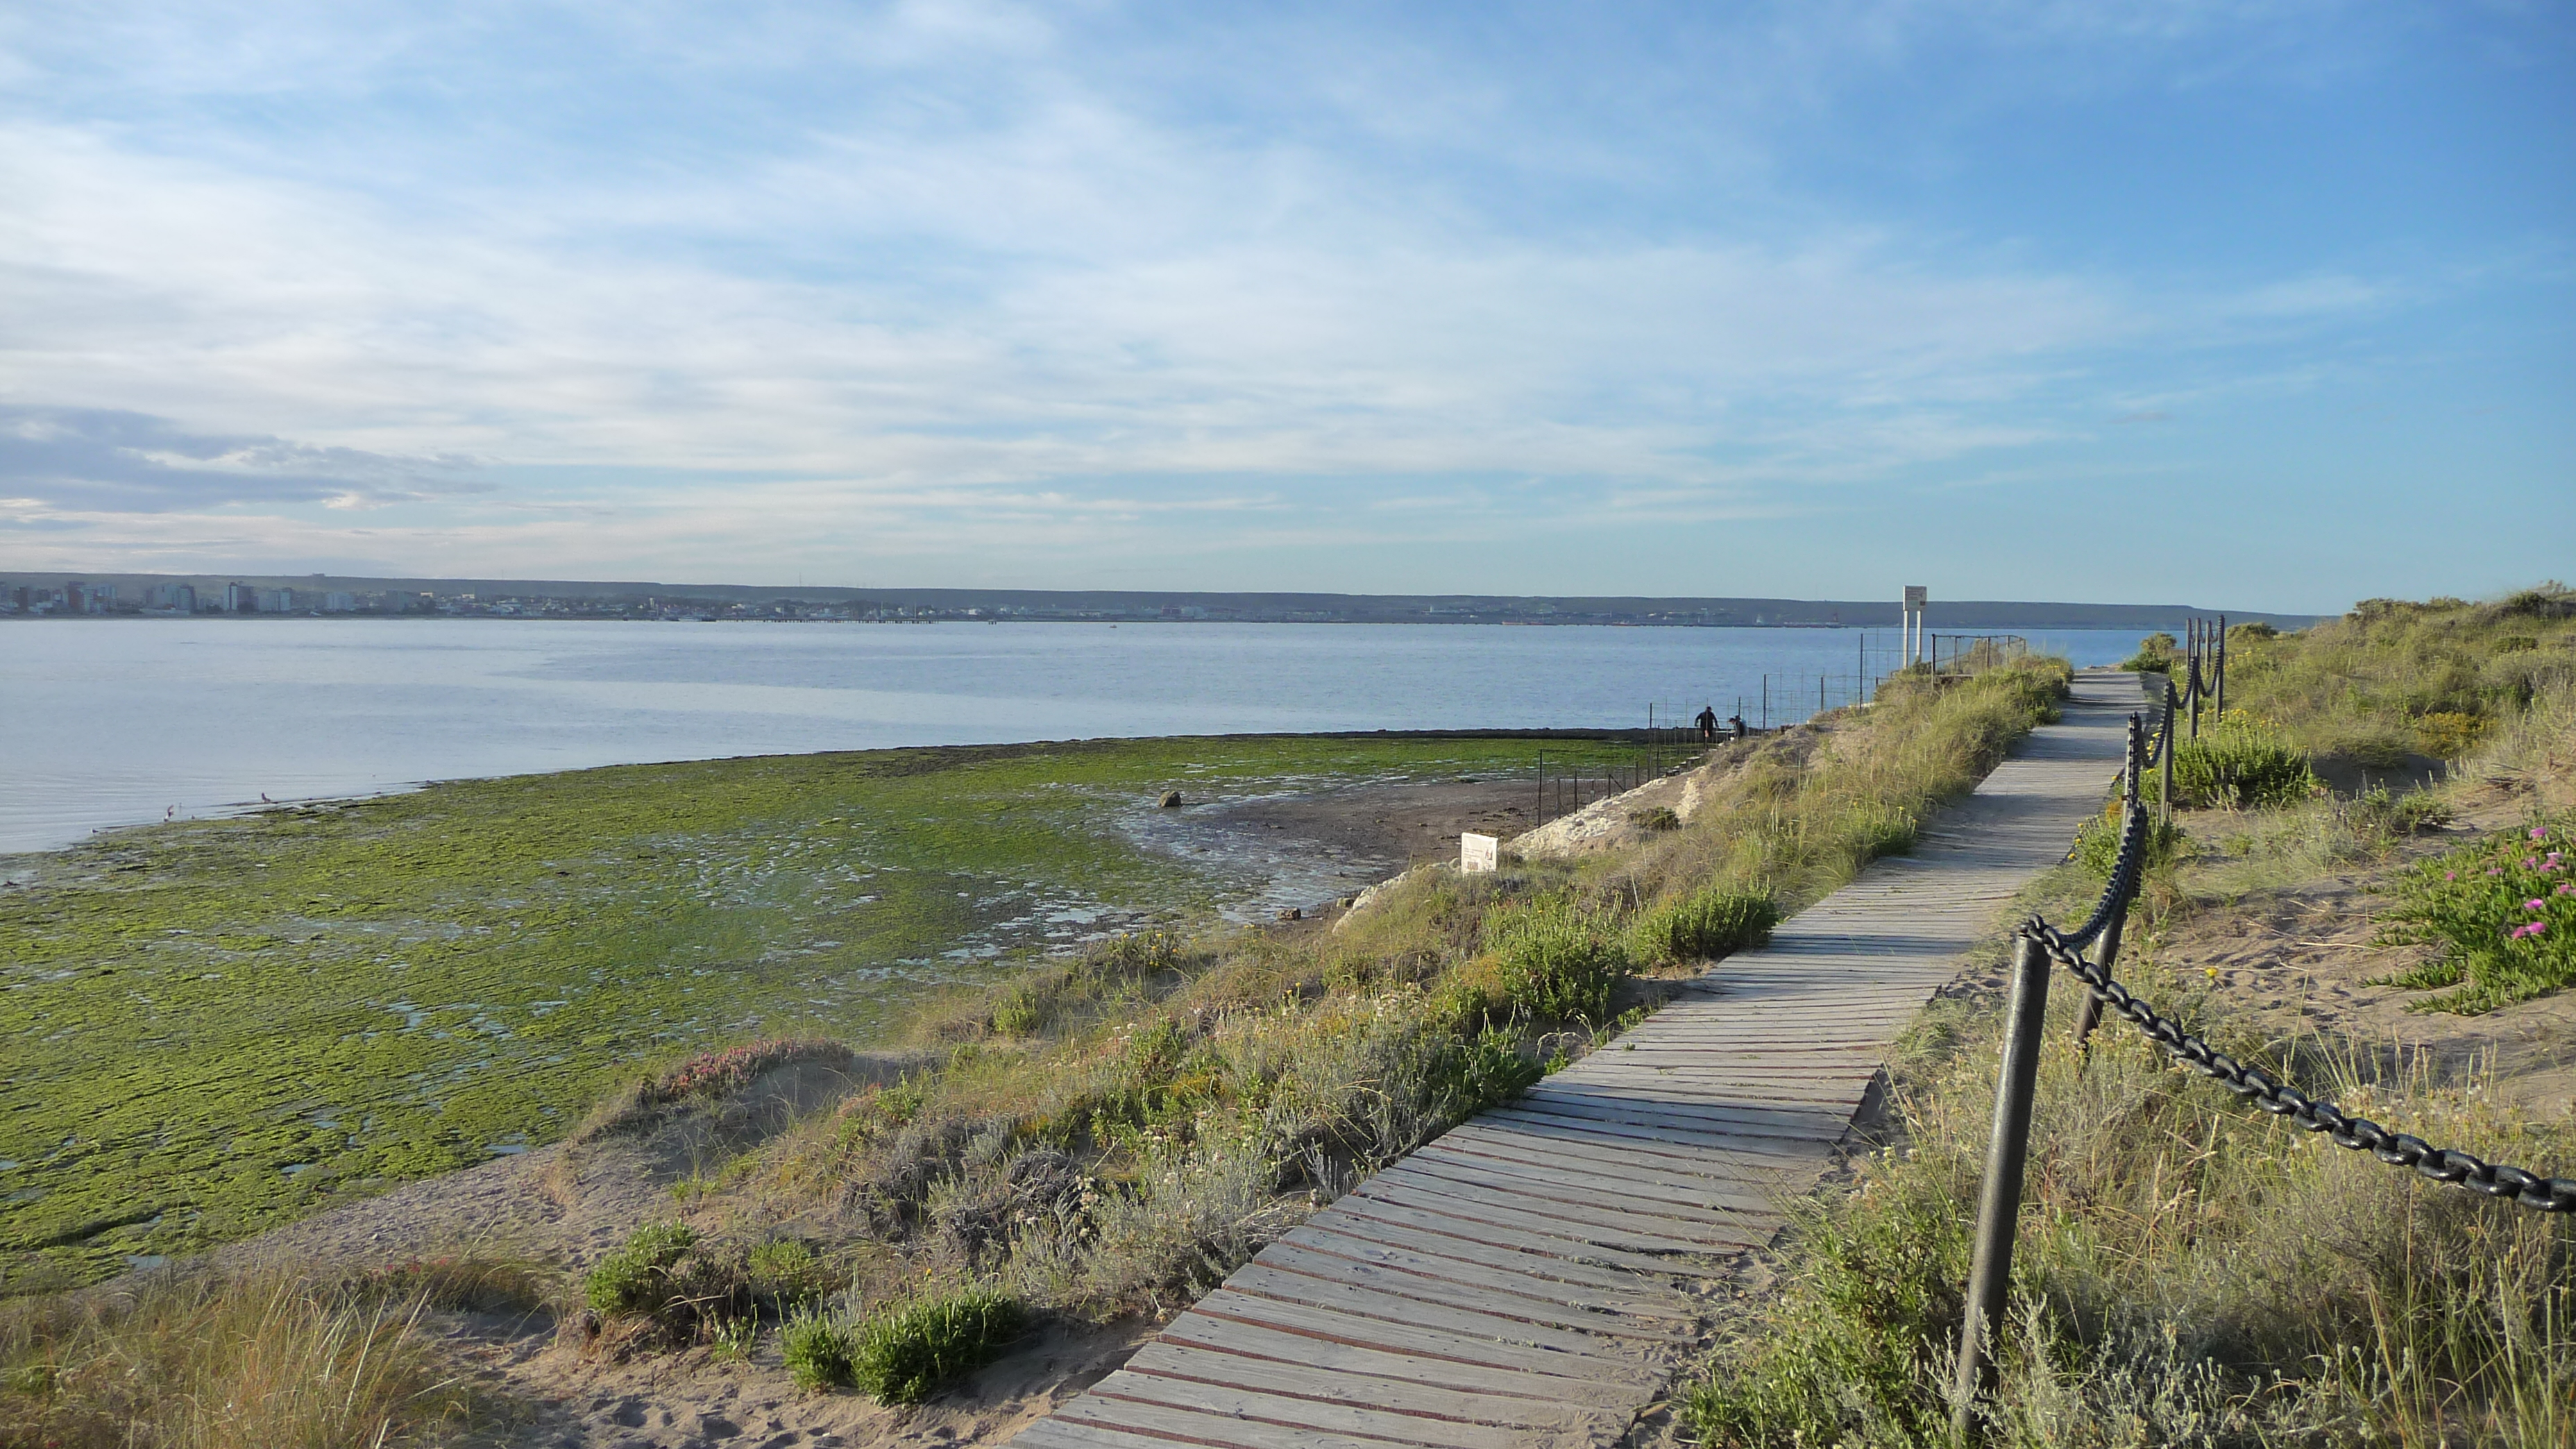 path close to the shore at Museo del Desembarco, Puerto Madryn